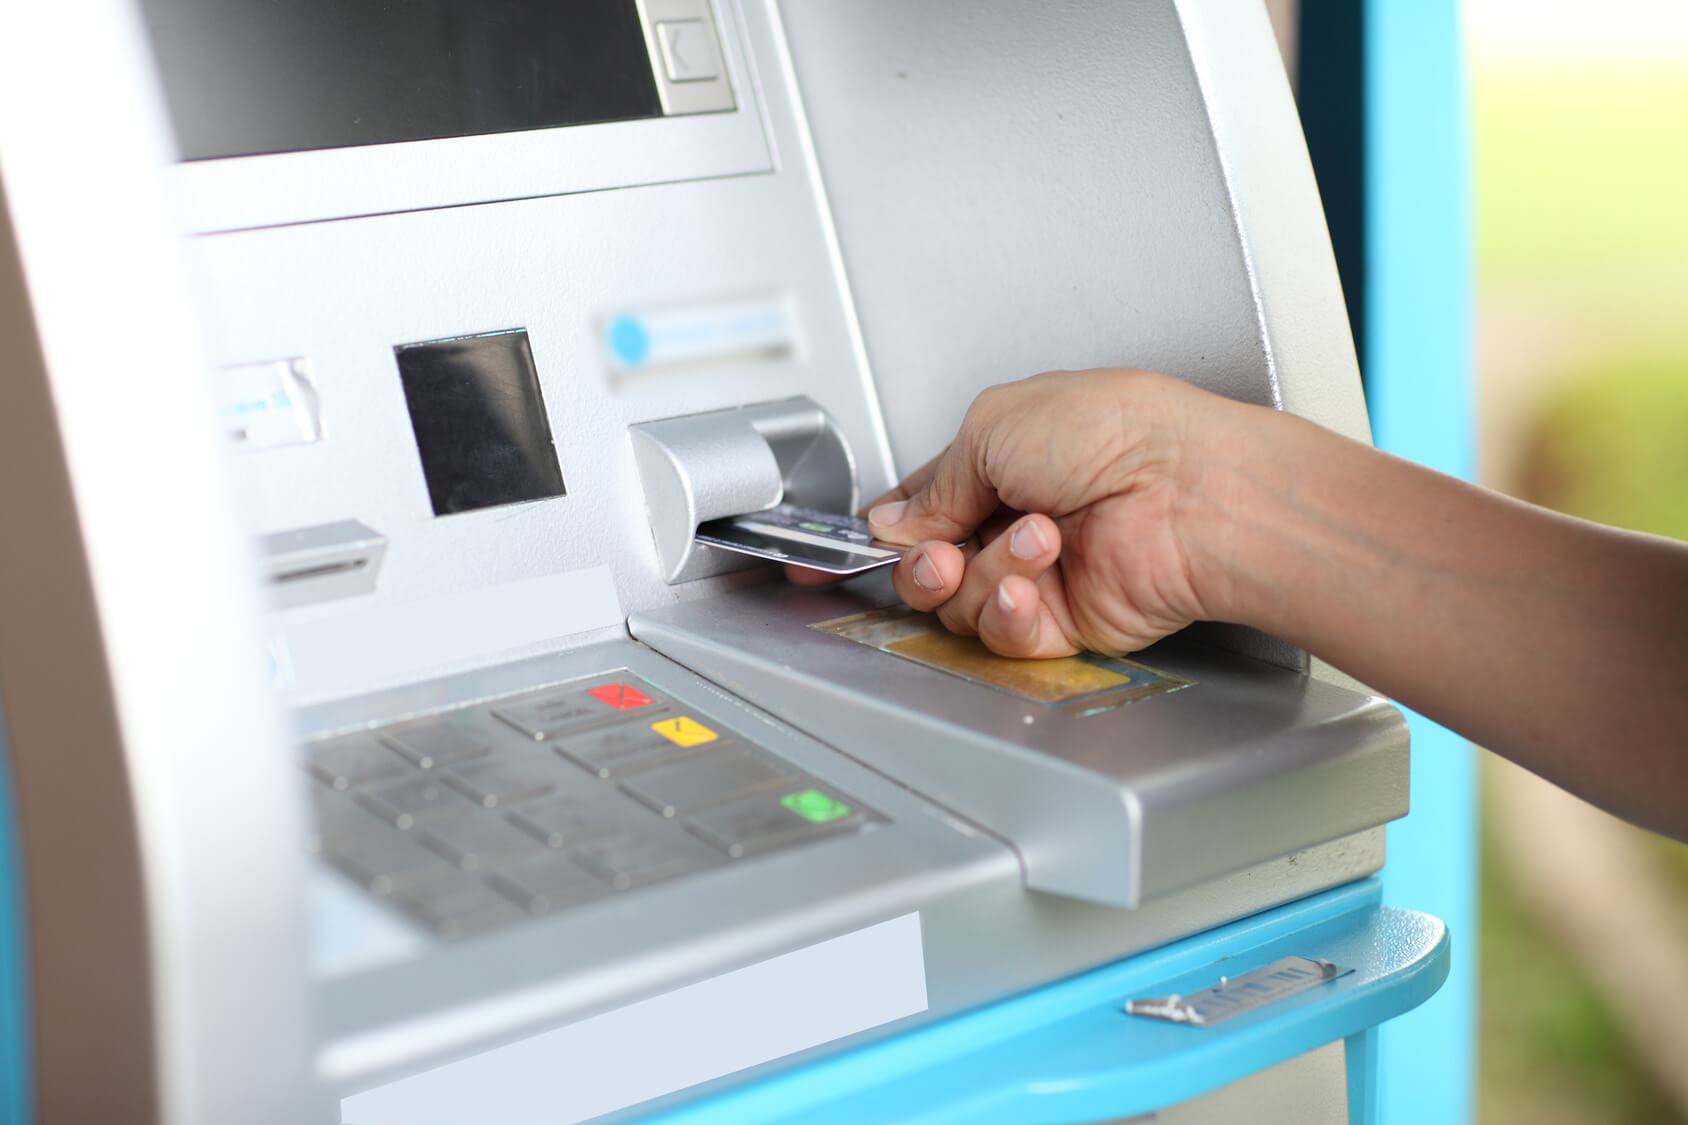 ATM Malware Cases Getting More Publicity